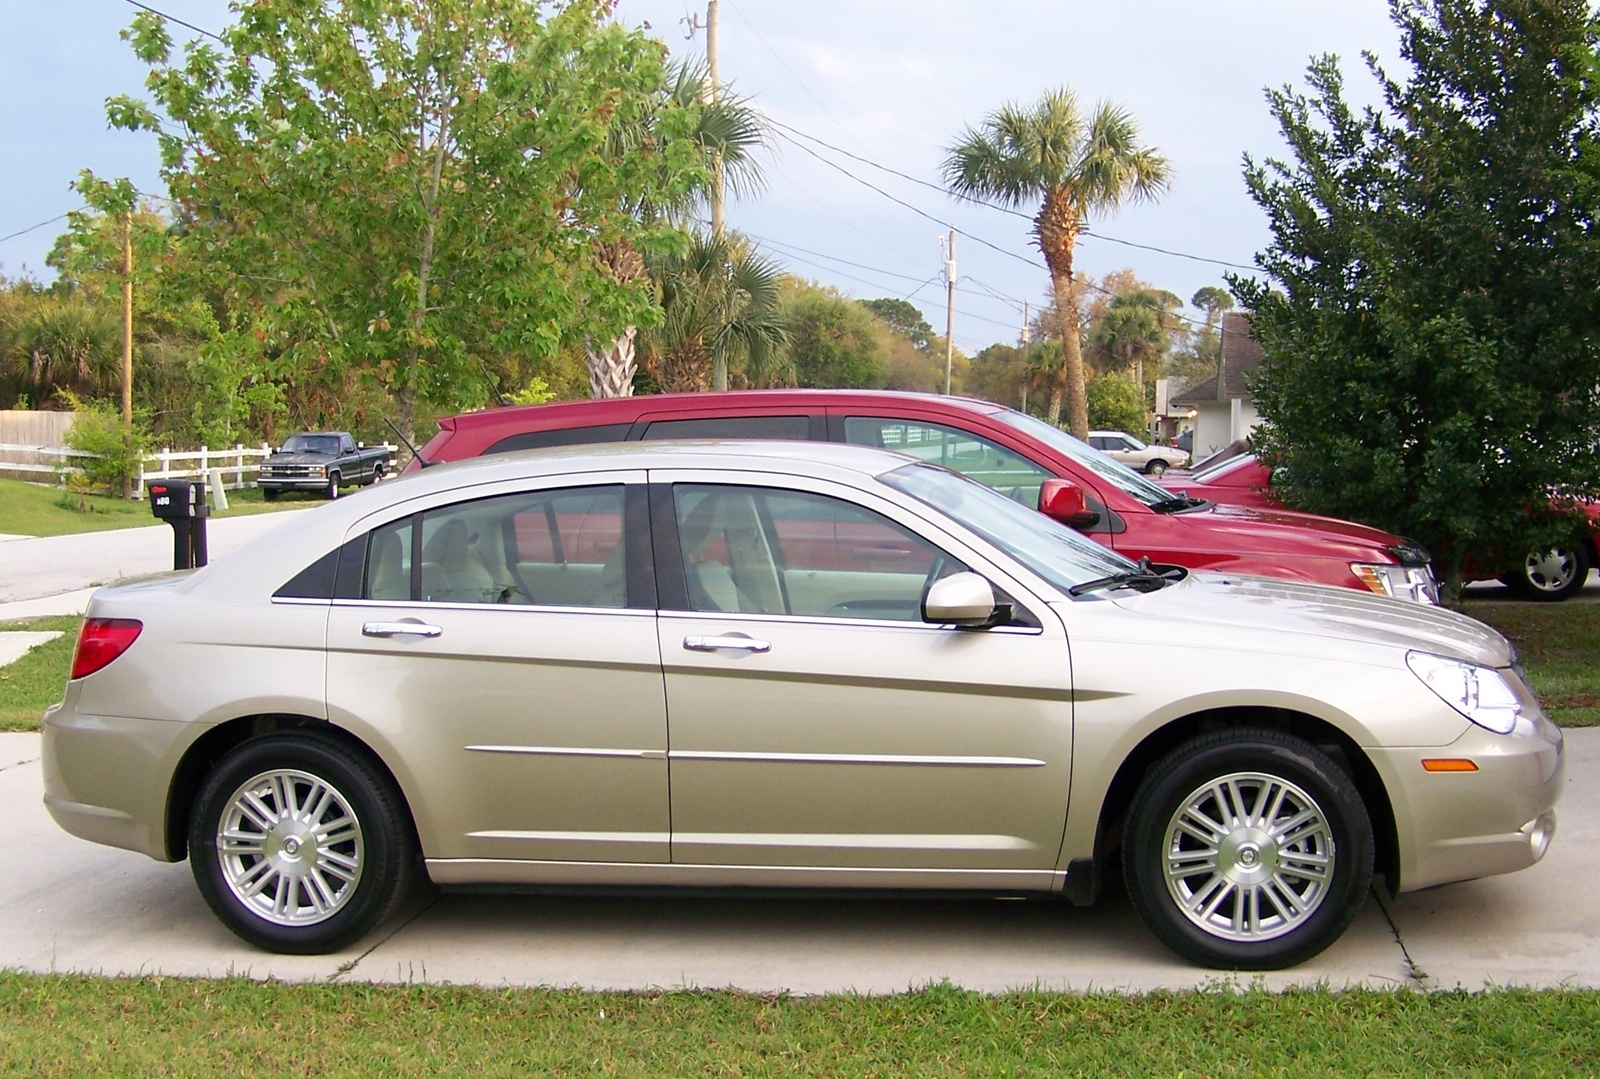 Used 2006 Chrysler Sebring For Sale Pricing Edmunds